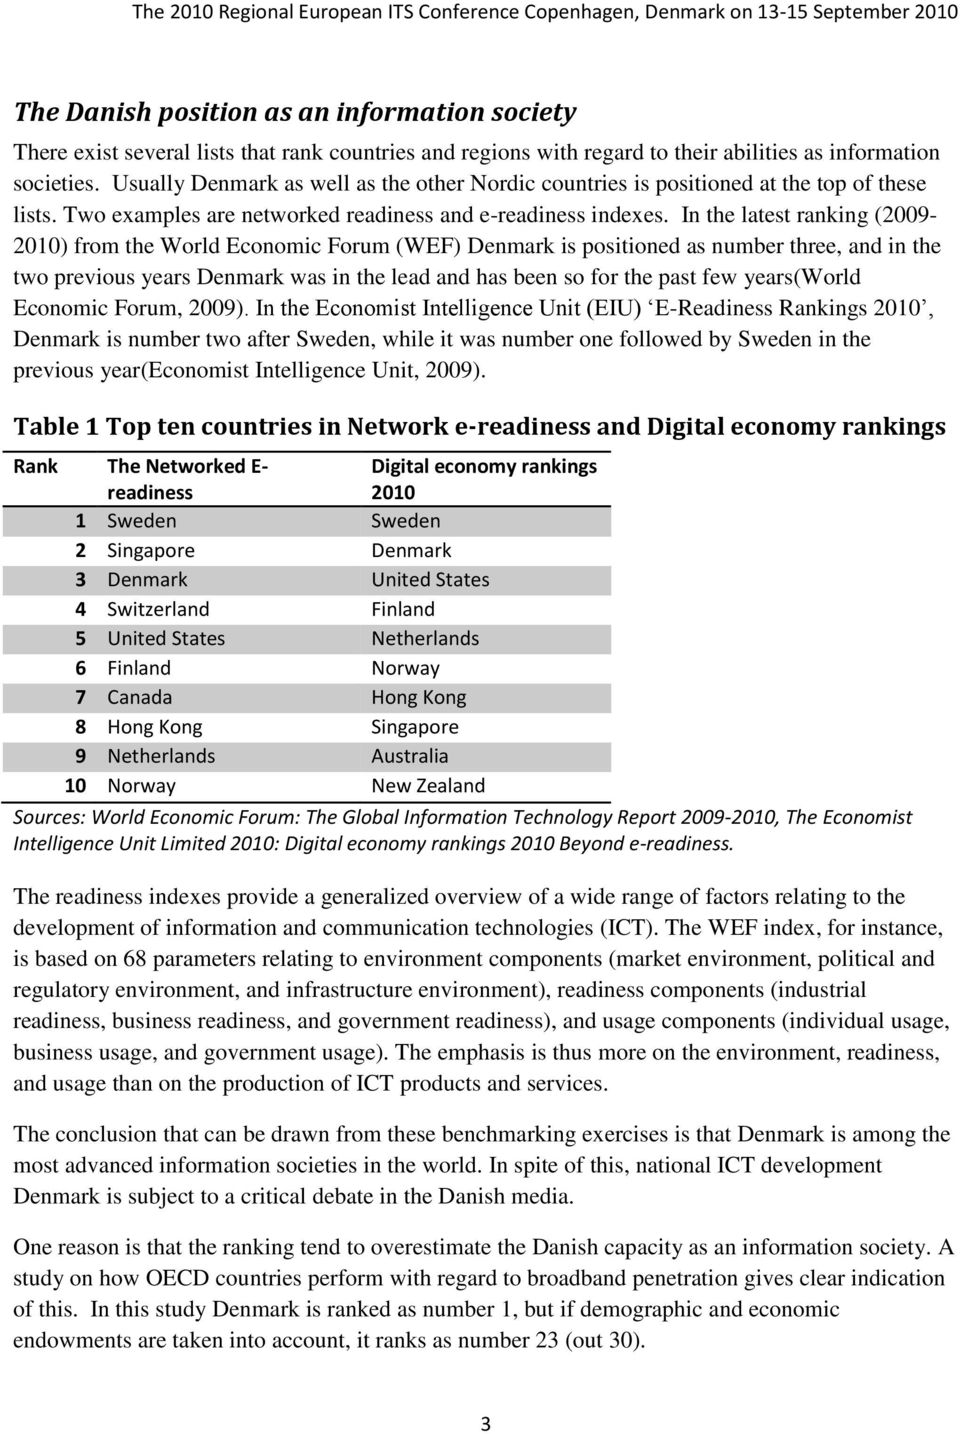 In the latest ranking (2009-2010) from the World Economic Forum (WEF) Denmark is positioned as number three, and in the two previous years Denmark was in the lead and has been so for the past few